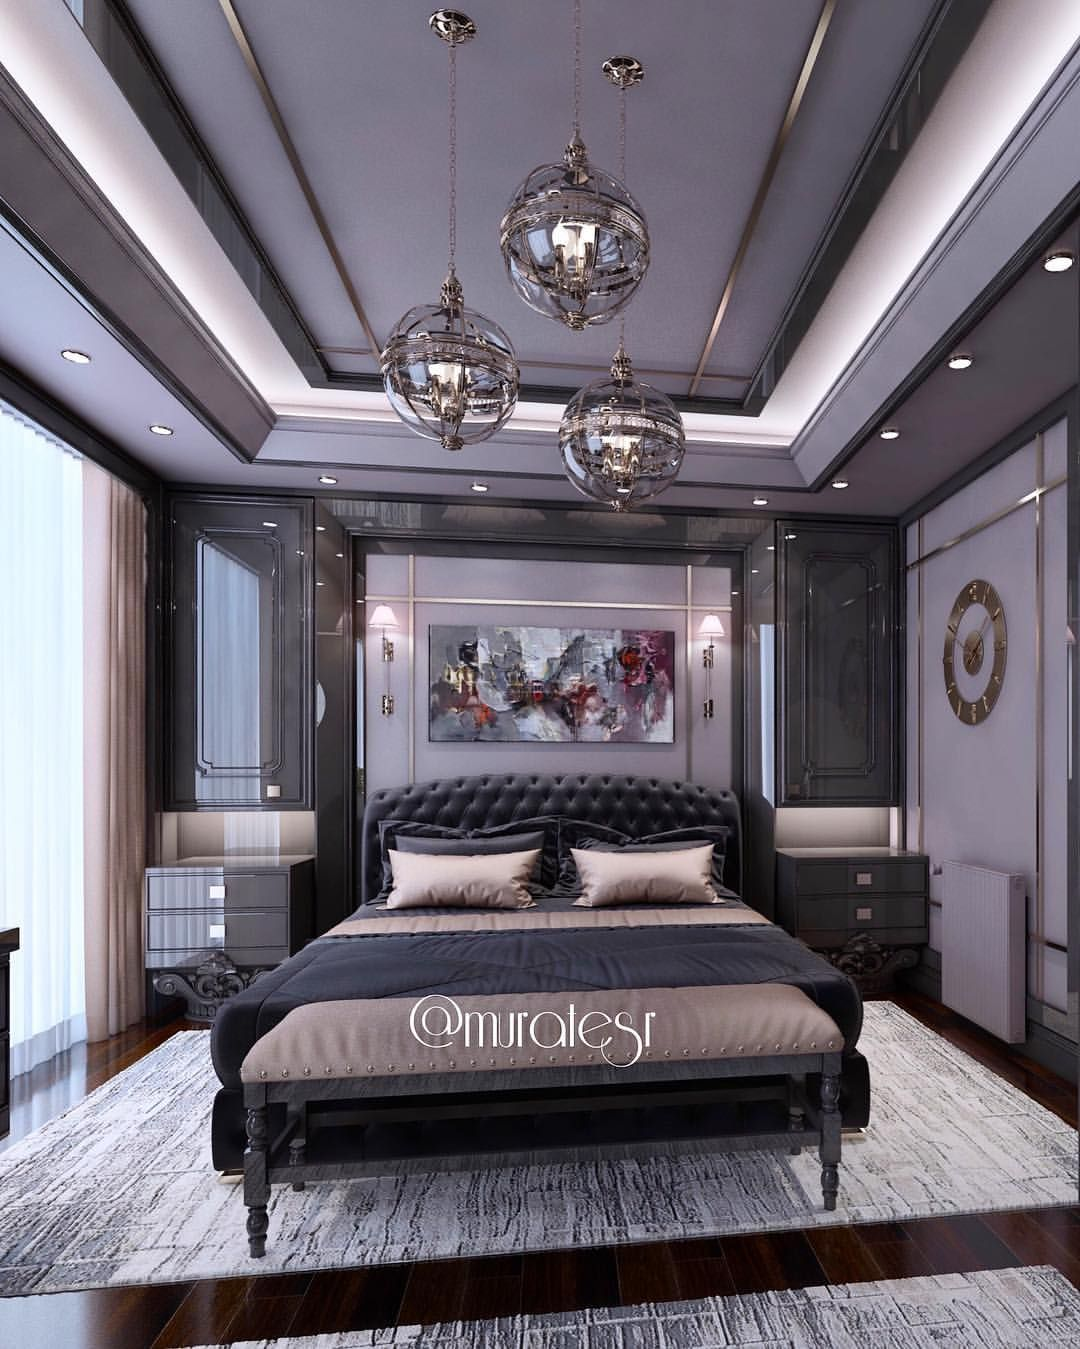 Home interior design house master pinterest bedroom ceiling and also rh